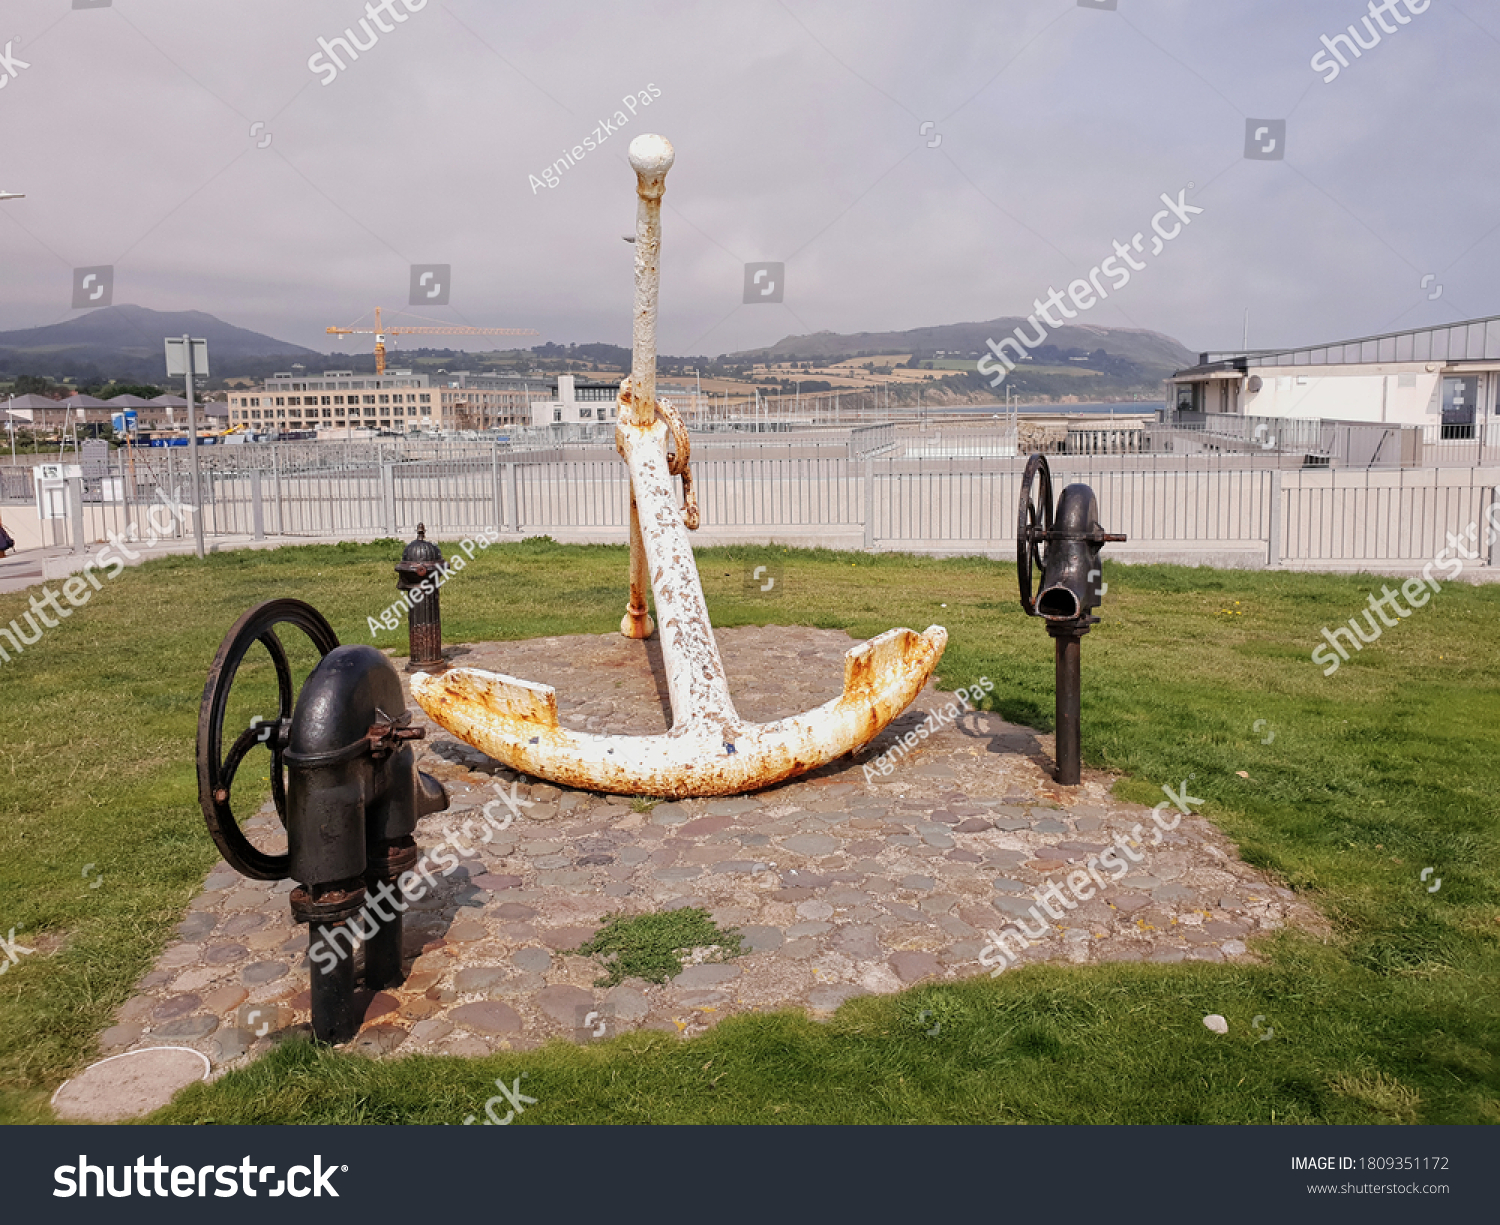 GREYSTONES, CO. WICKLOW, IRELAND - AUGUST 09, 2020: Anchor monument in the port in Greystones town. Wicklow mountains in the background. Cloudy summer day.